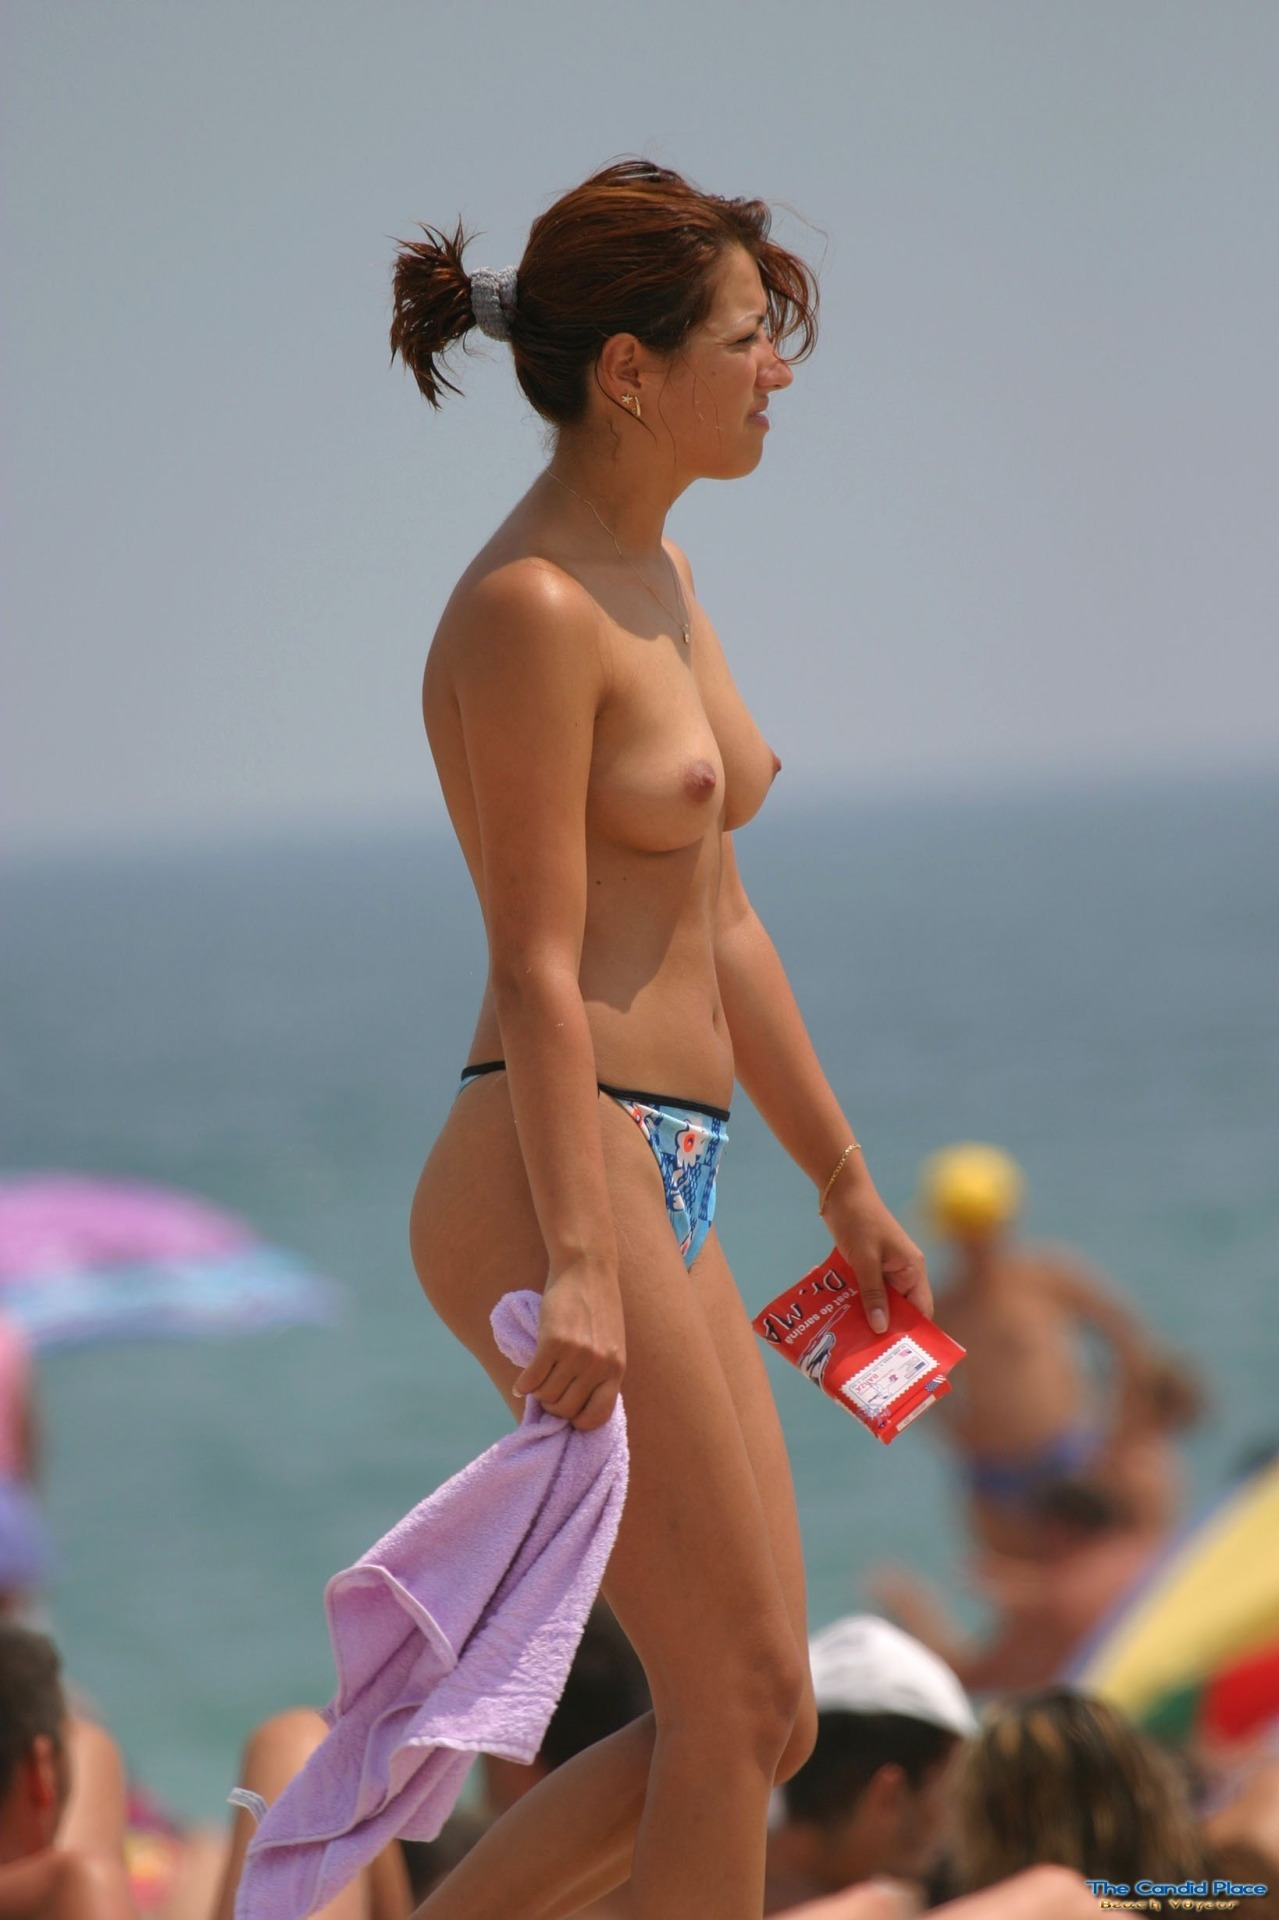 Topless, thonged, cotton-tailed, fully nude | the sl naturist